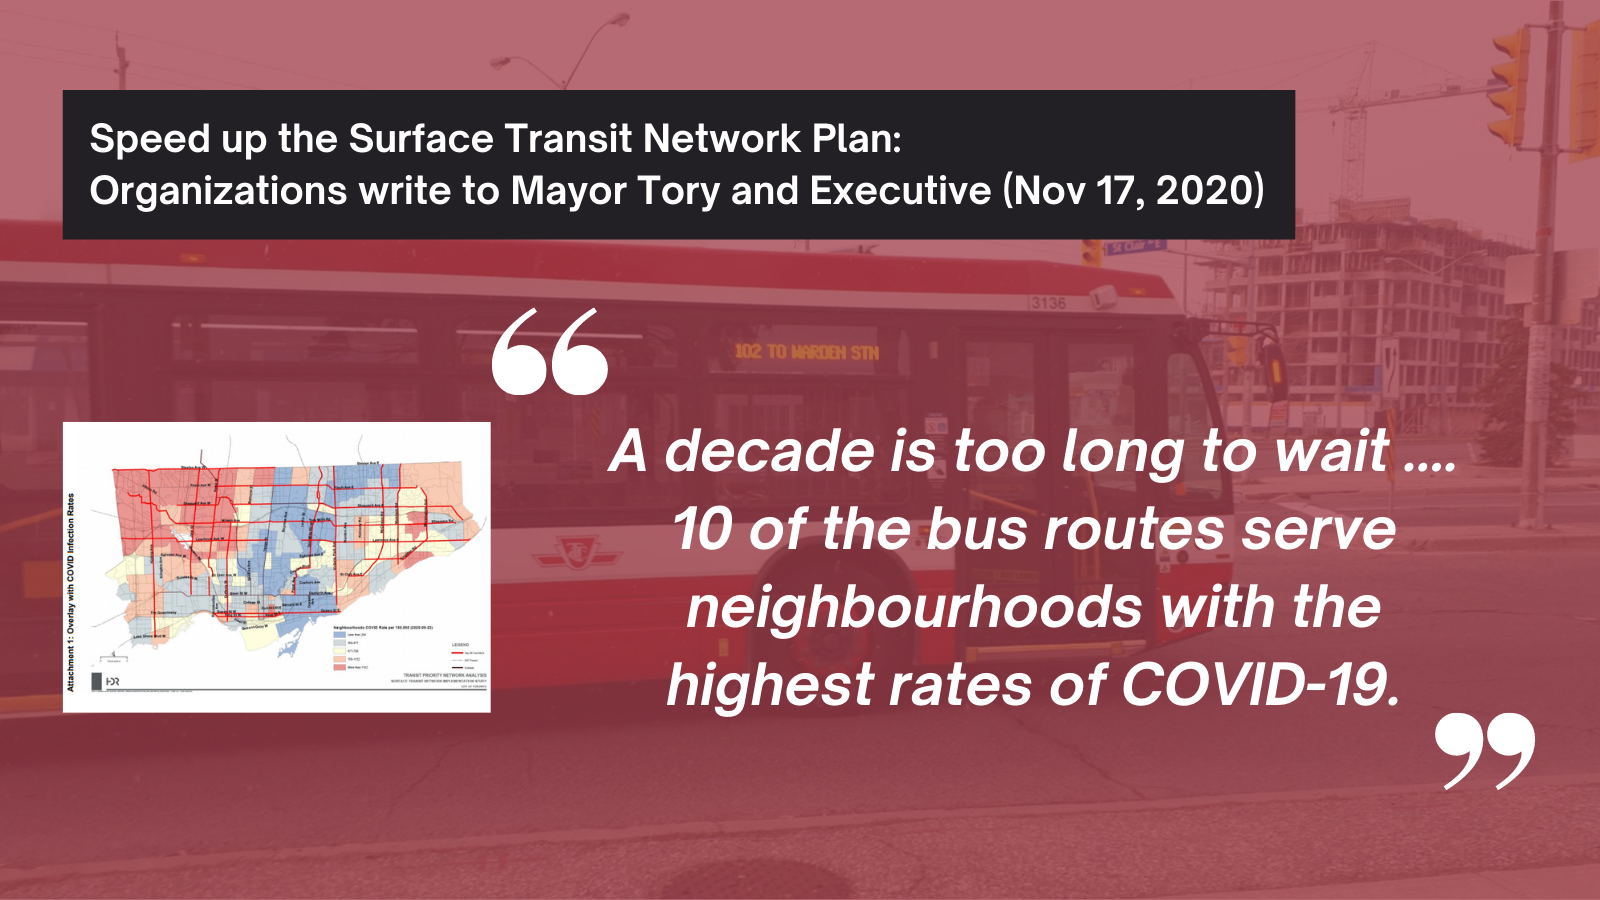 Reads: A decade is too long to wait... 10 of the bus routes serve neighbourhoods with the highest rates of COVID-19.